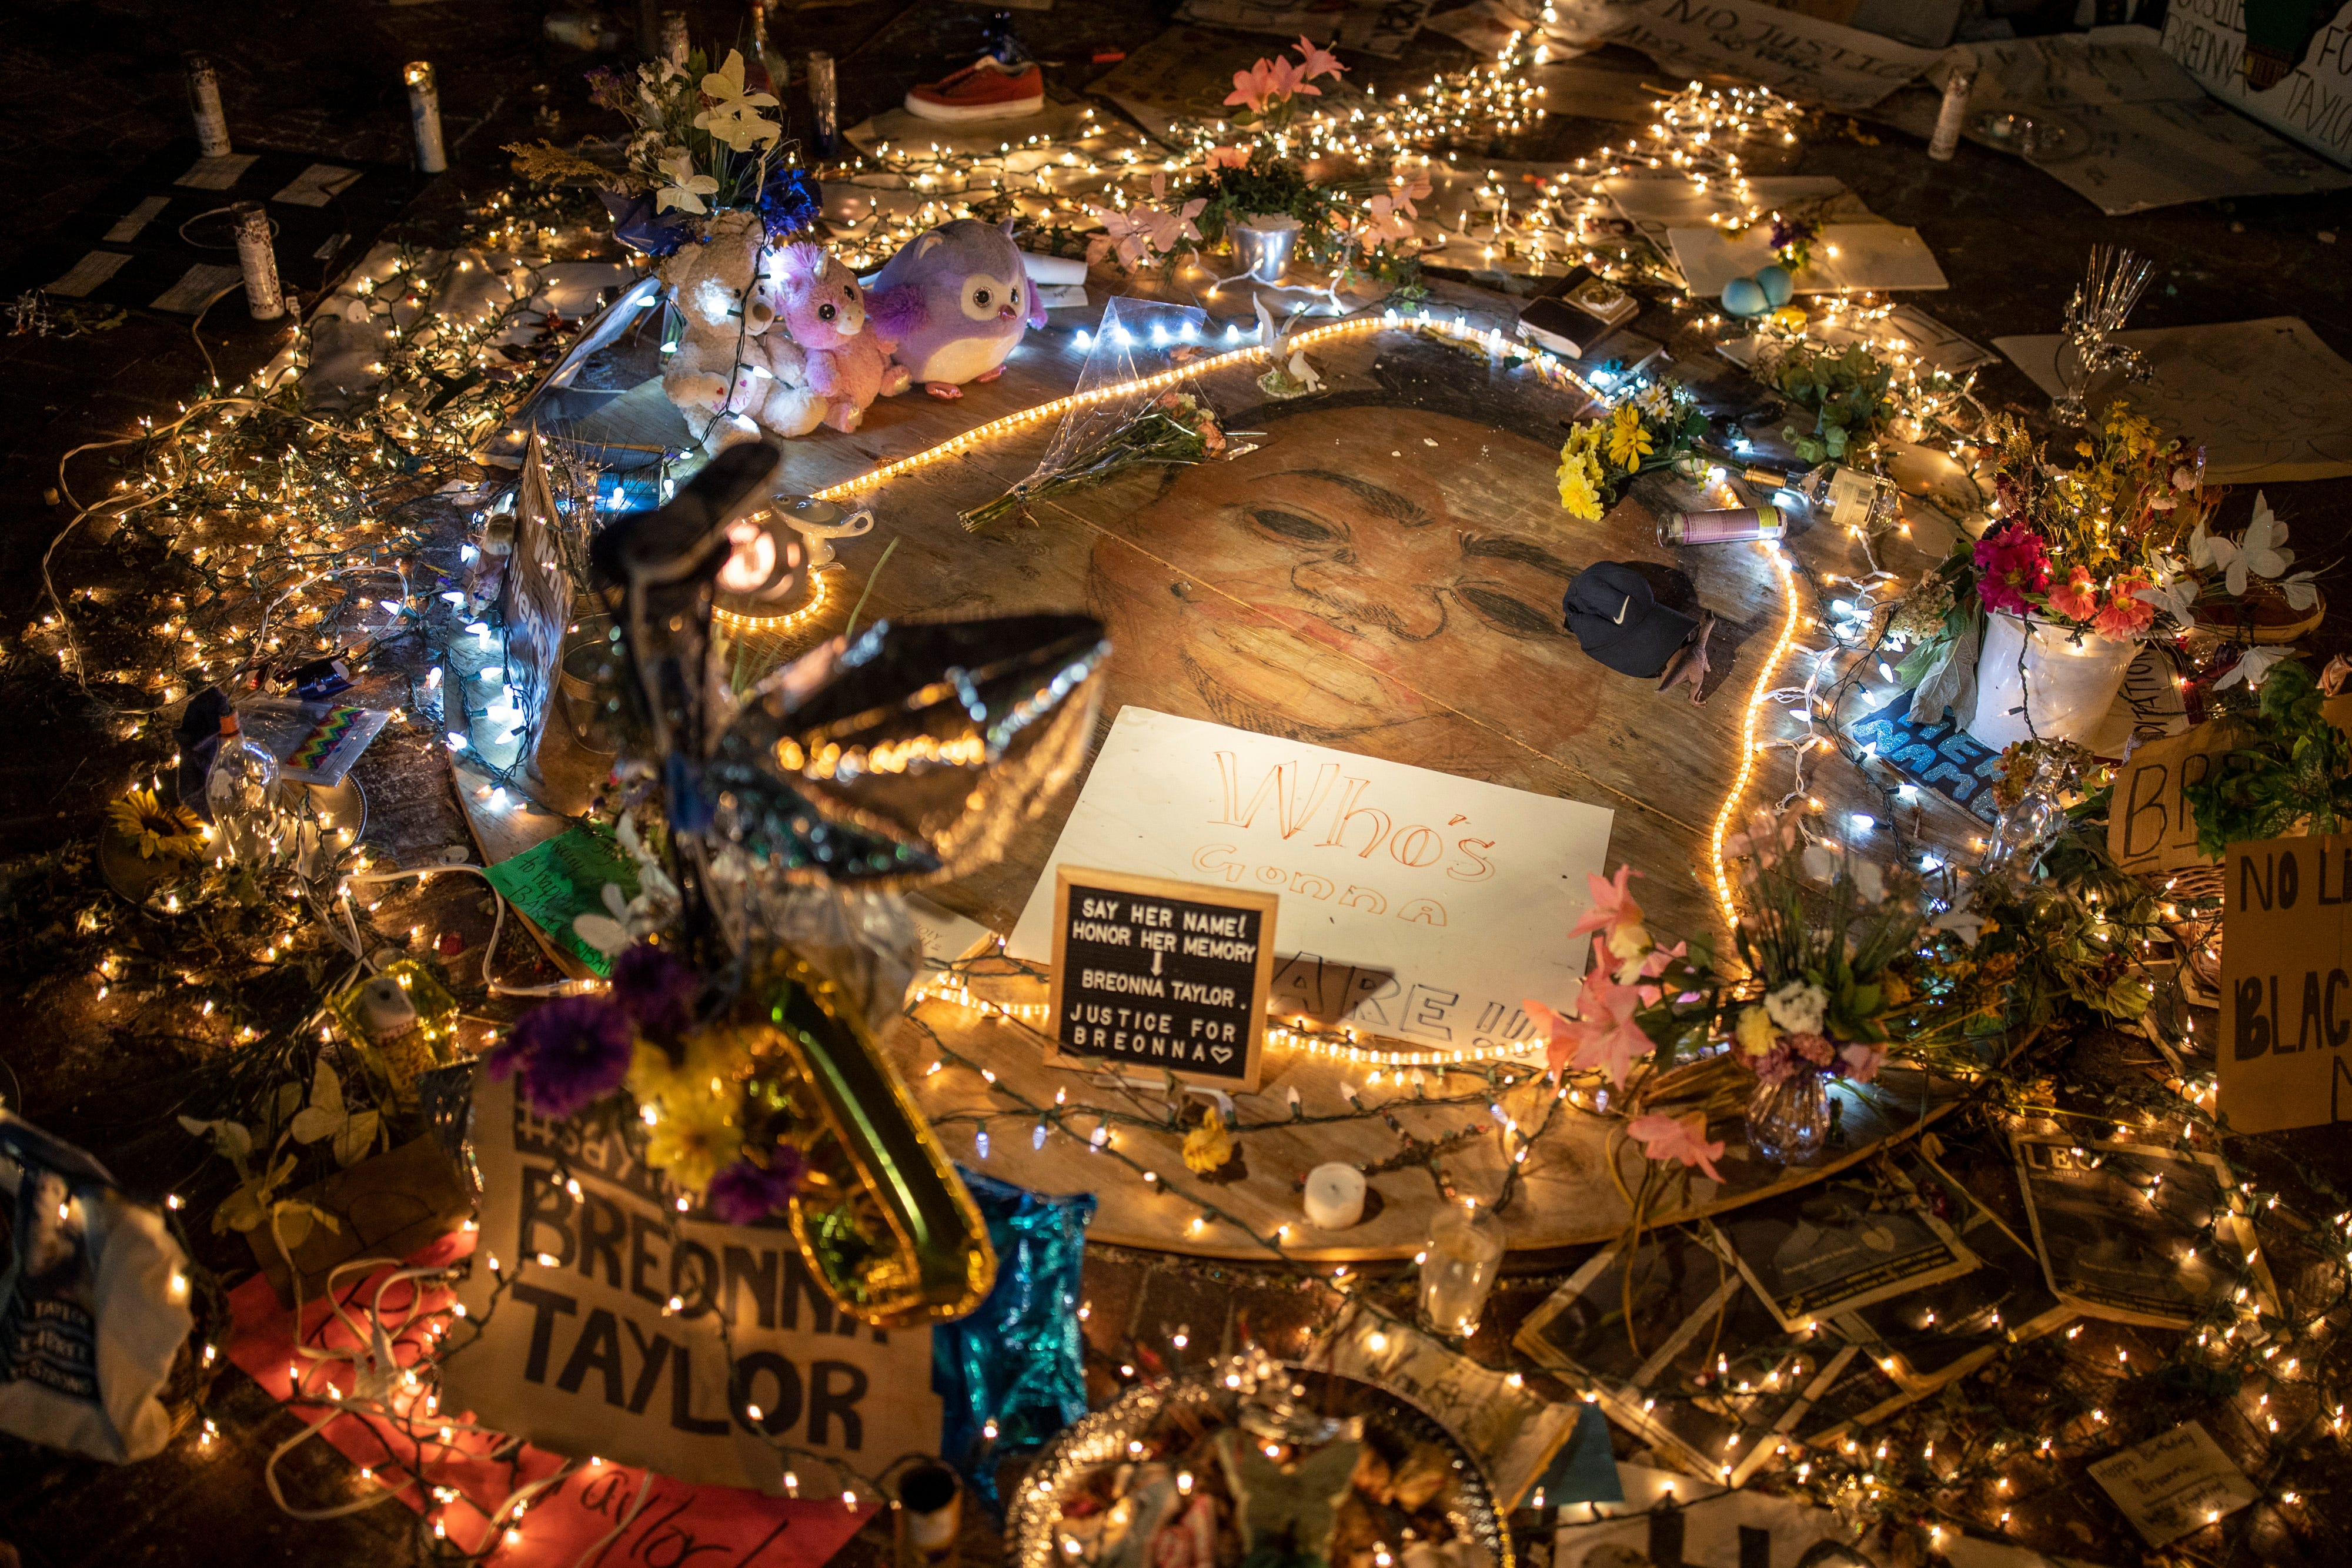 A portrait of Breonna Taylor is surrounded by tributes and lights in downtown Louisville on Thursday evening. June 18, 2020